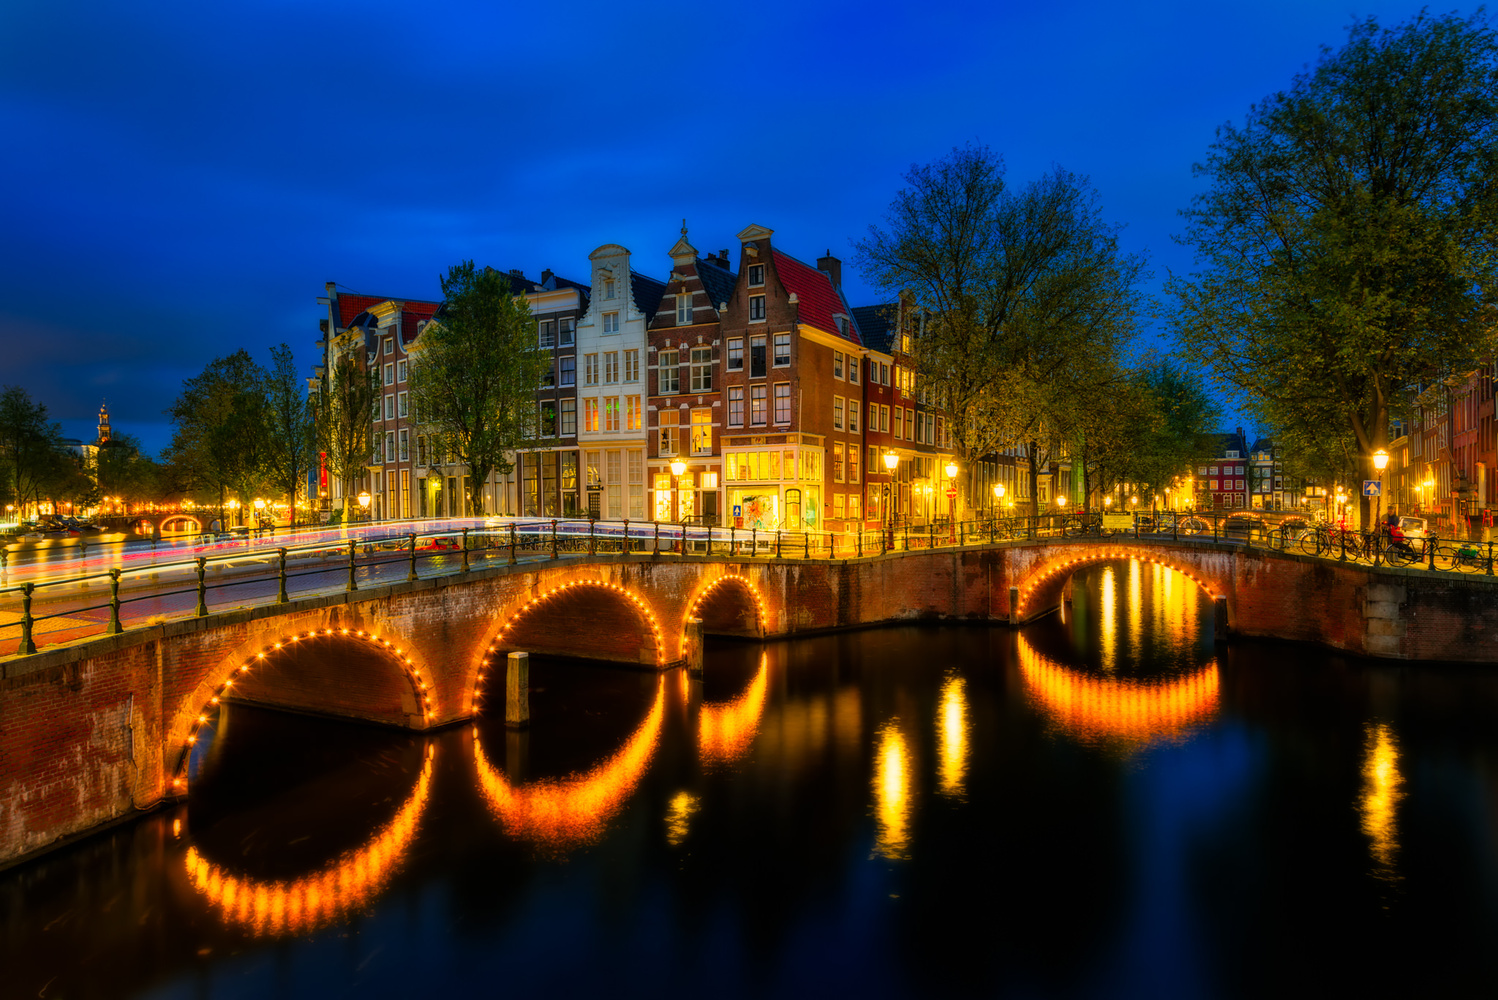 Keizersgracht | Amsterdam, Netherlands by Nico Trinkhaus